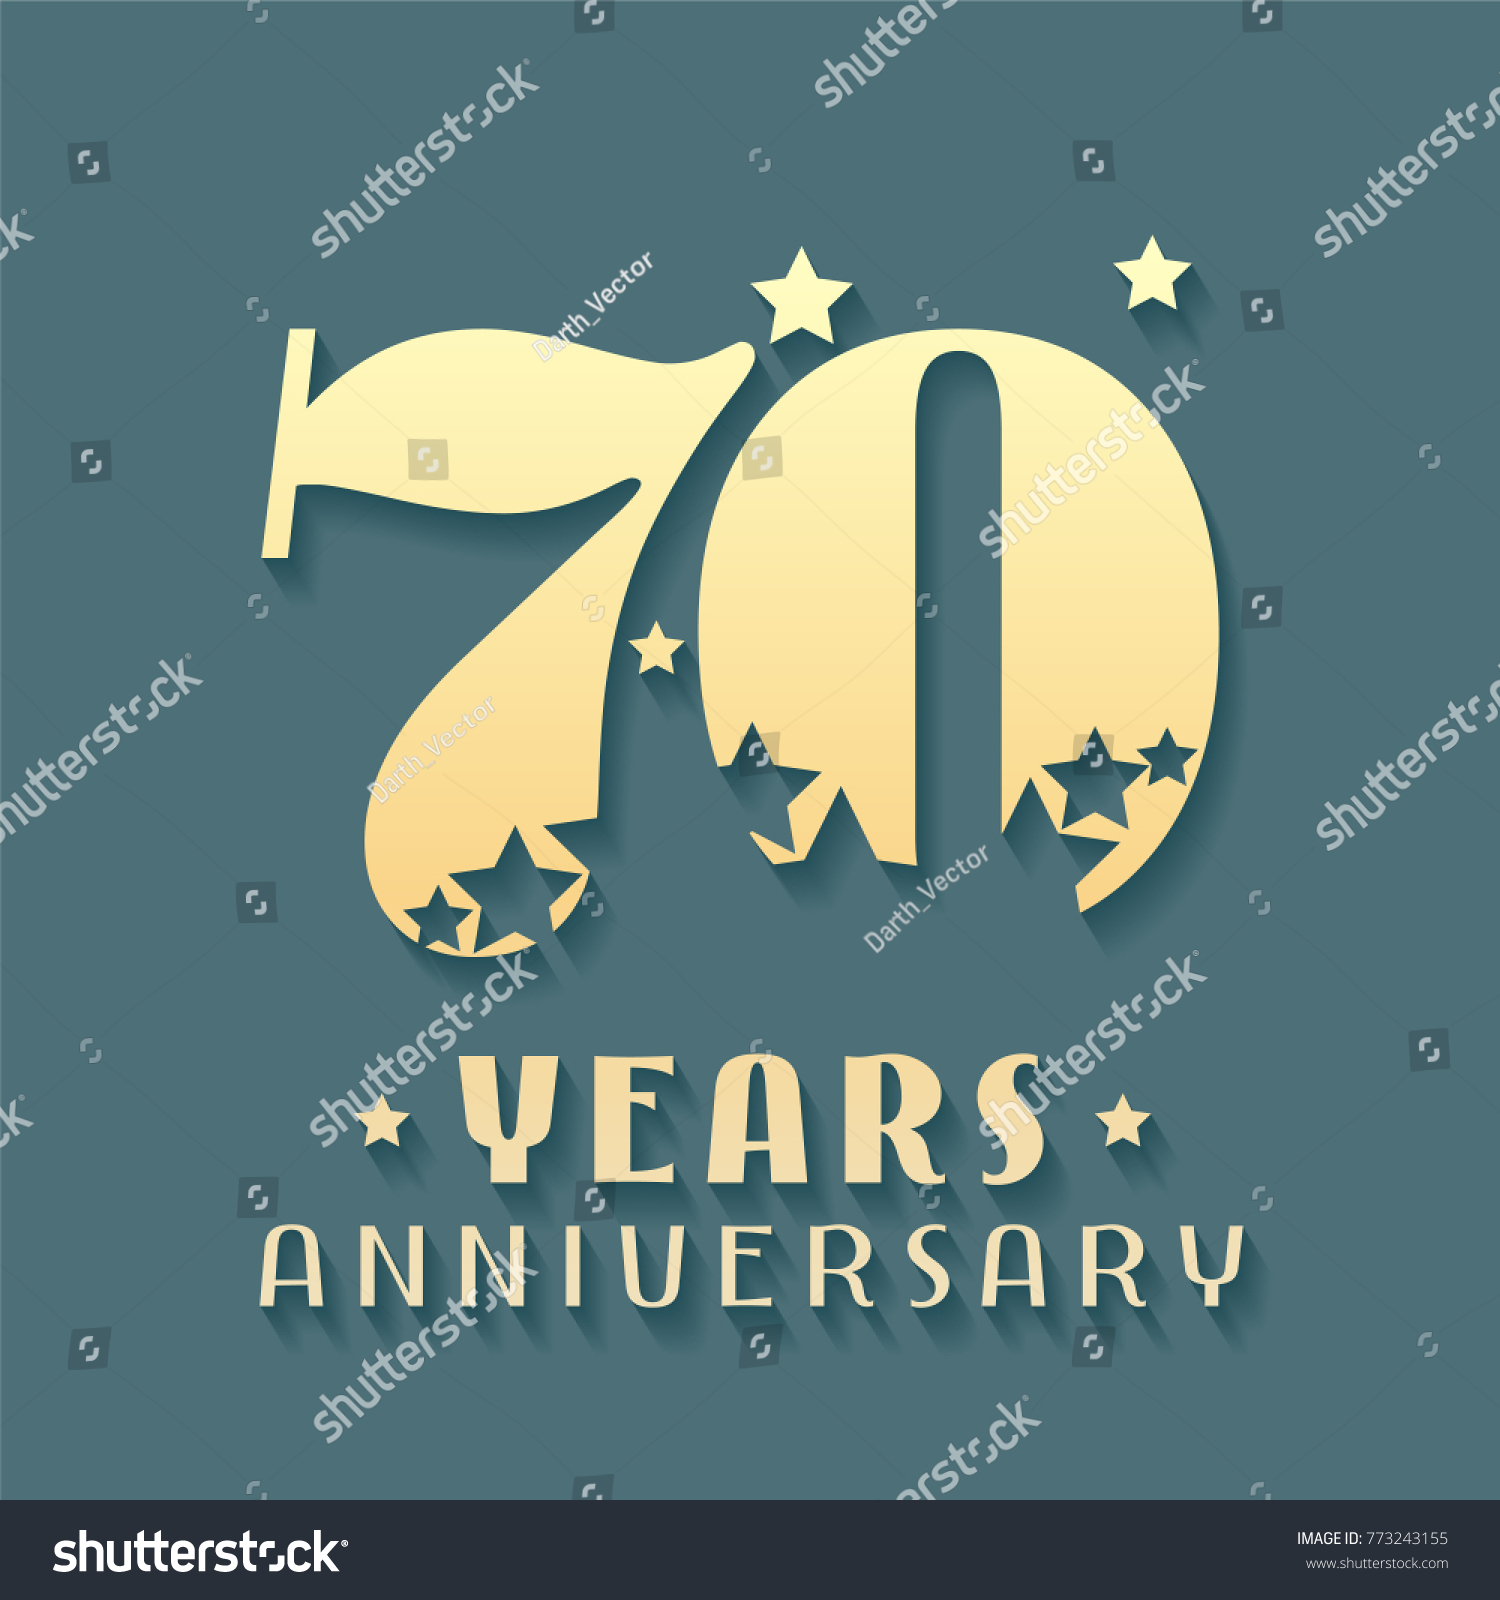 70 years anniversary vector icon symbol stock vector 773243155 70 years anniversary vector icon symbol logo graphic design element for 70th anniversary biocorpaavc